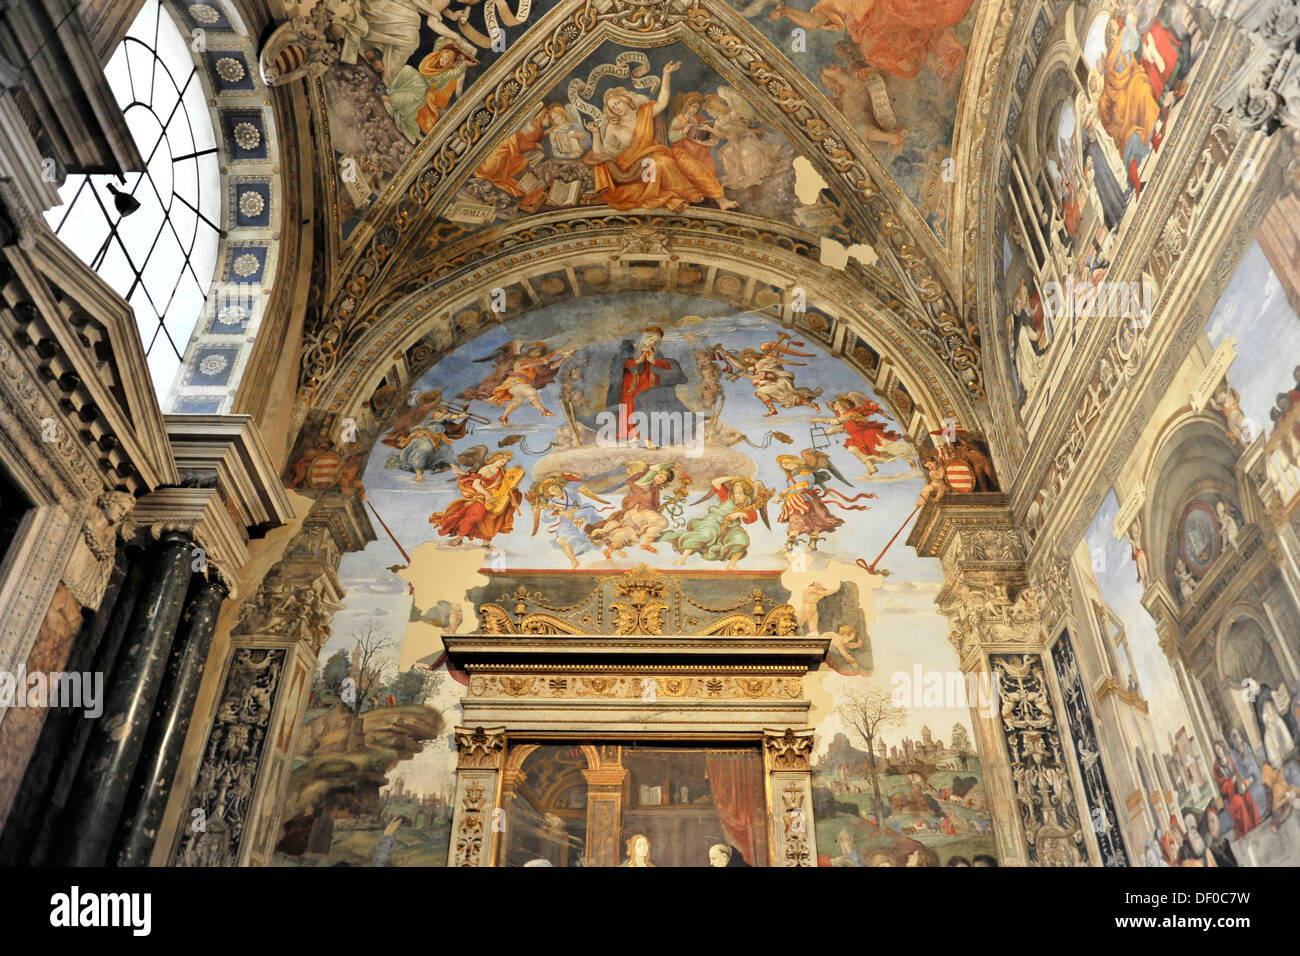 Interior, Basilica of Santa Maria sopra Minerva, Rome, Italy, Europe Stock Photo